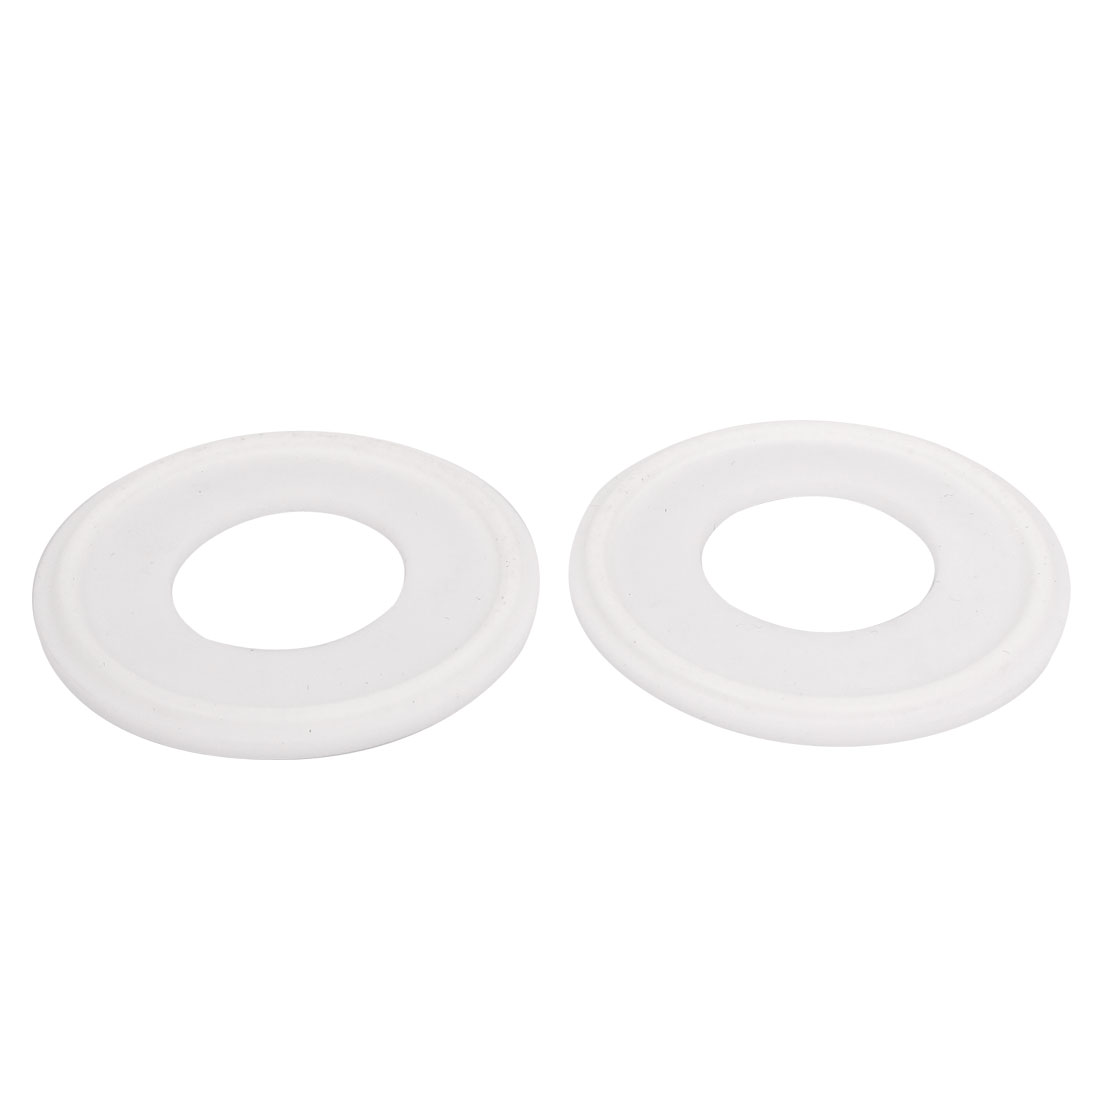 "25mm PTFE Gasket 2pcs for 1.5"" Tri Clamp Sanitary Pipe Fittings Ferrules"